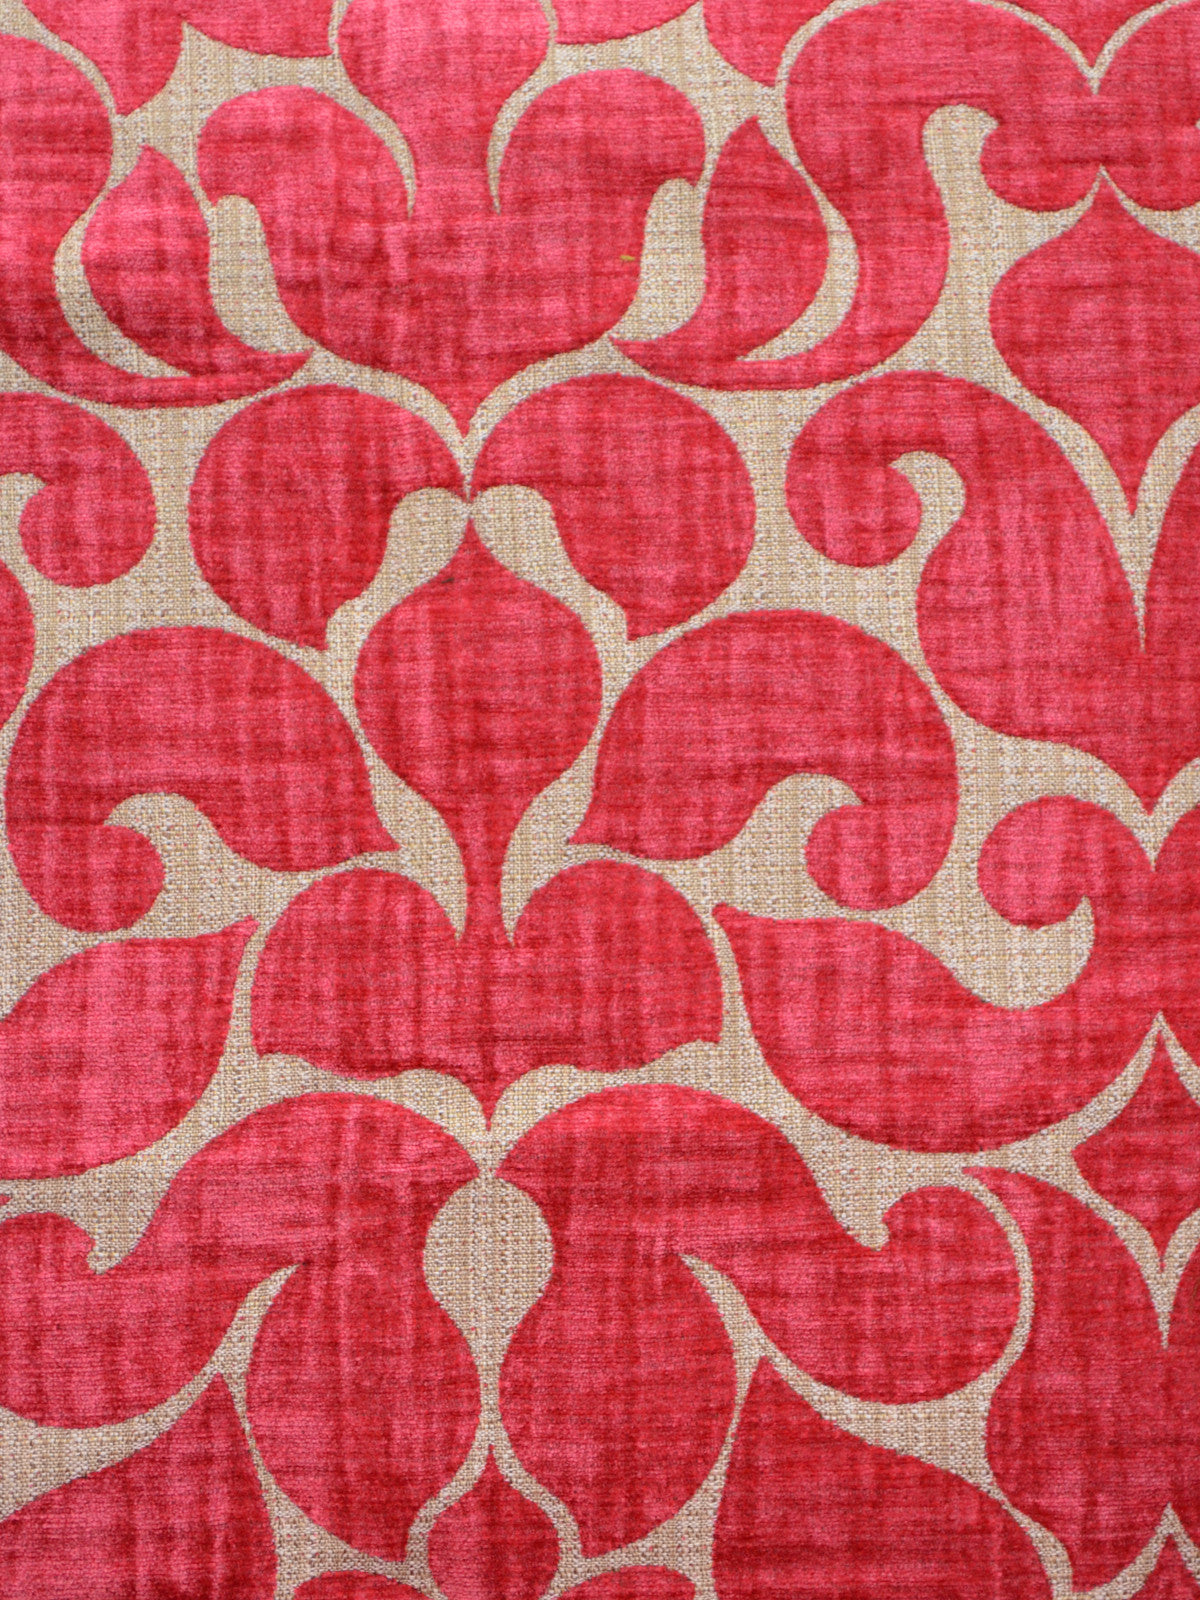 damask, upholstery fabric, home decor